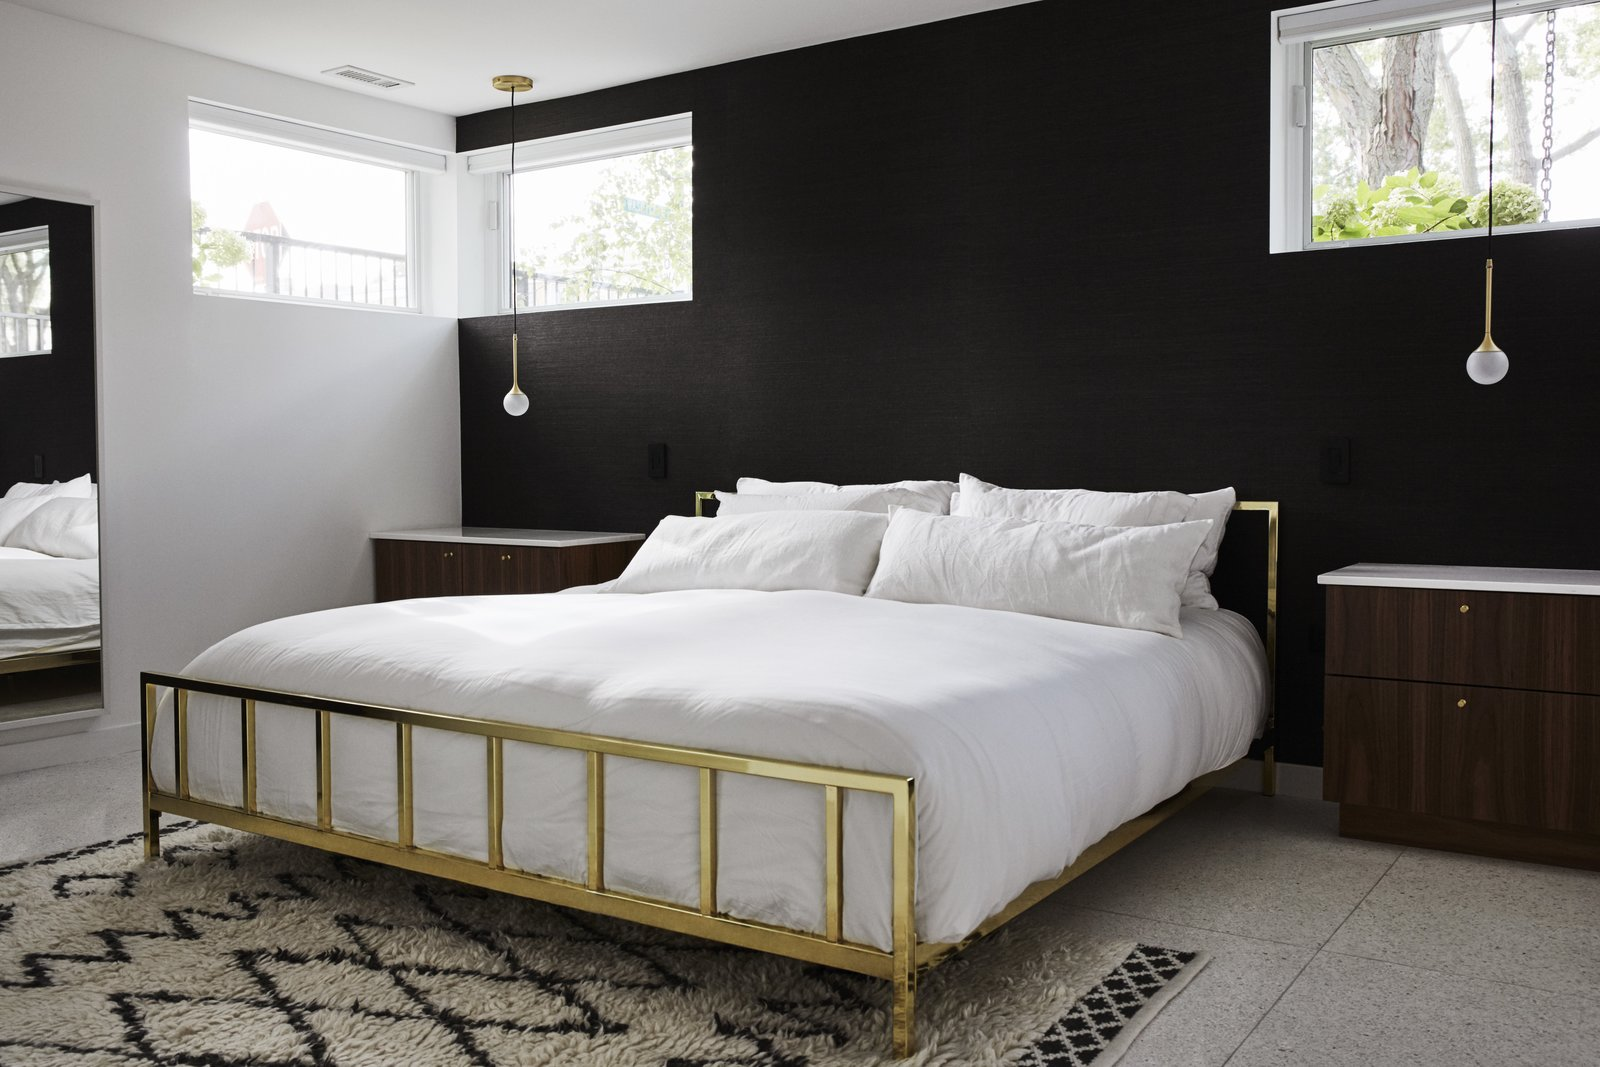 An Alchemy bed from CB2 is flanked by marble-topped night stands. The Krisztian Mecs for Intueri Light pendants are from Lumens.